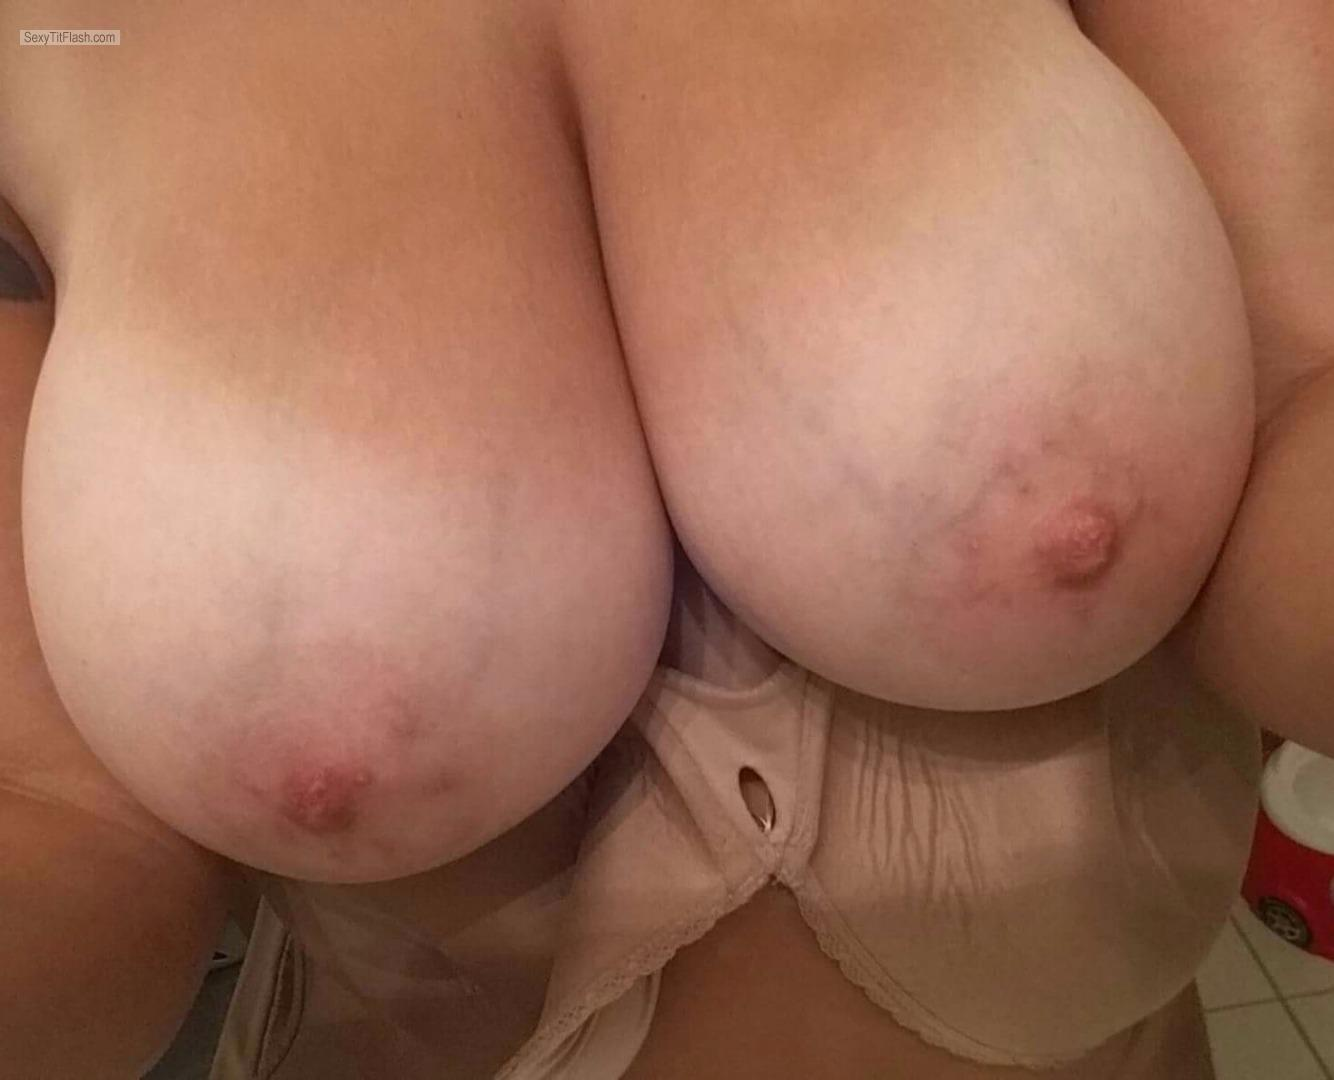 Tit Flash: My Very Big Tits - Topless Wifey from United Kingdom